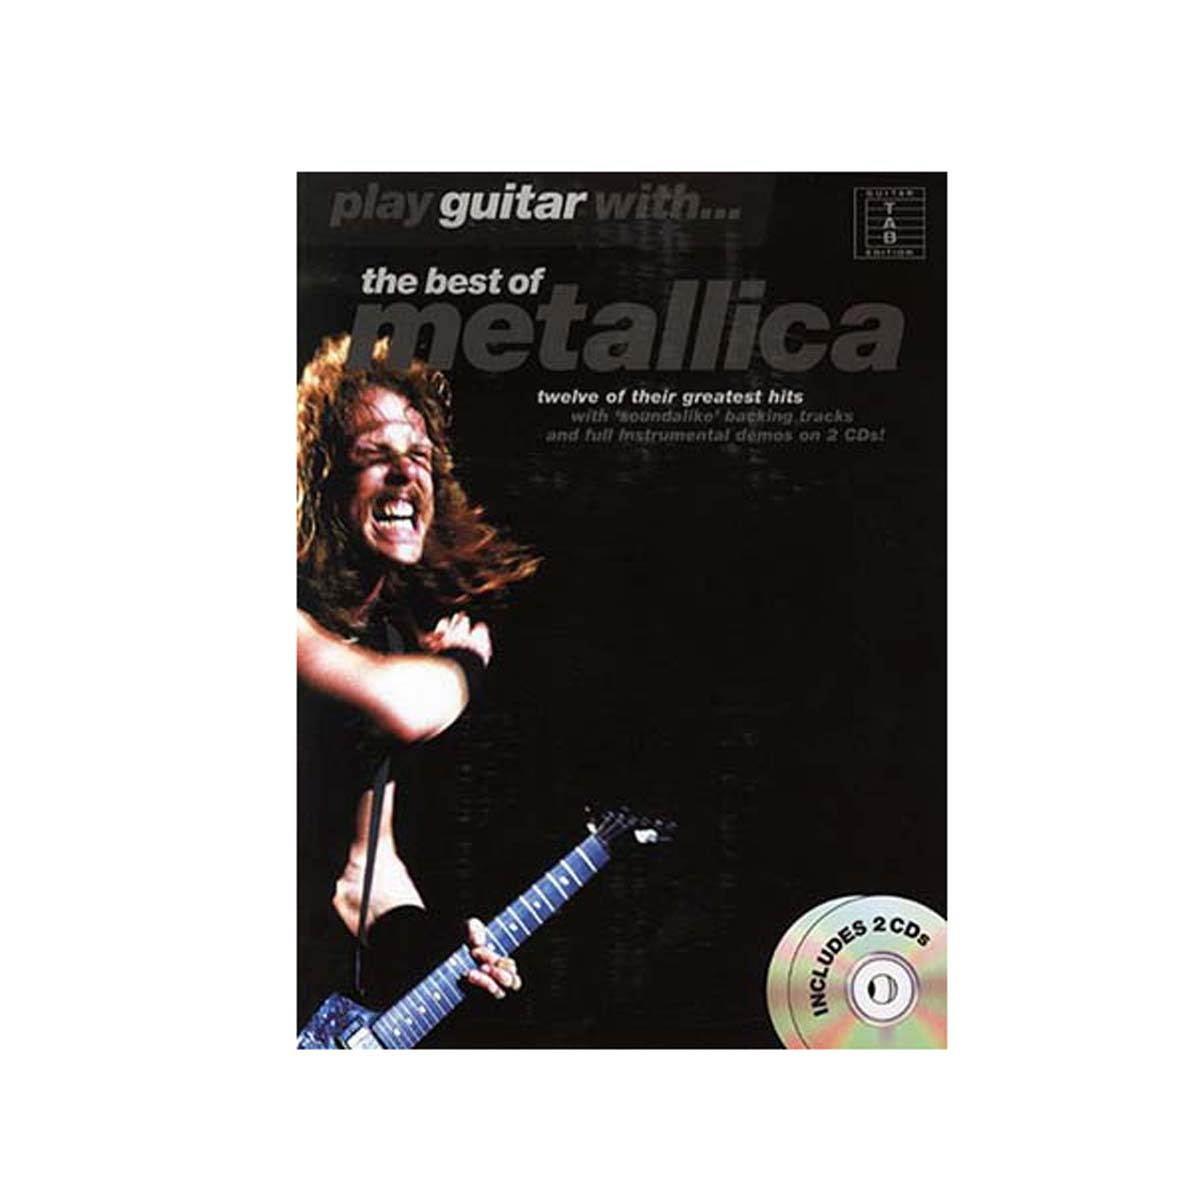 Play guitar withThe best of Metallica